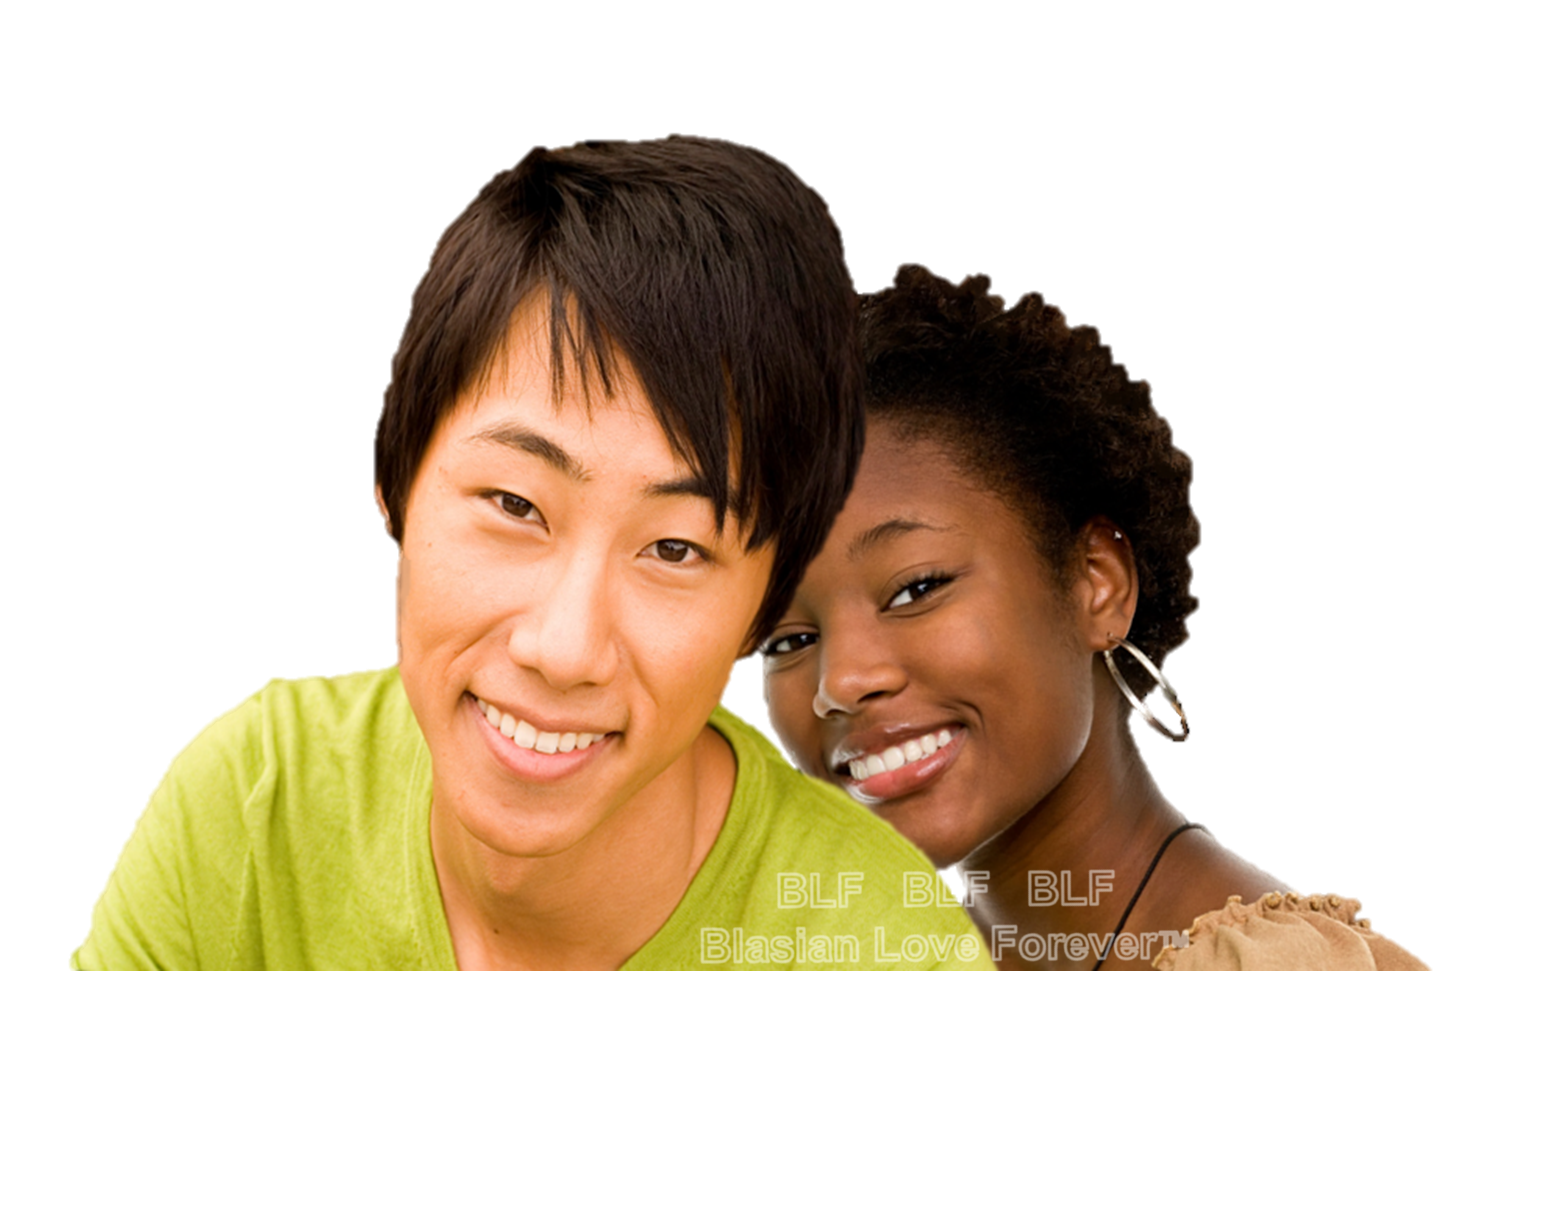 audubon black women dating site Our black dating site is the #1 trusted dating source for singles across the united states register for free to start seeing your matches today.